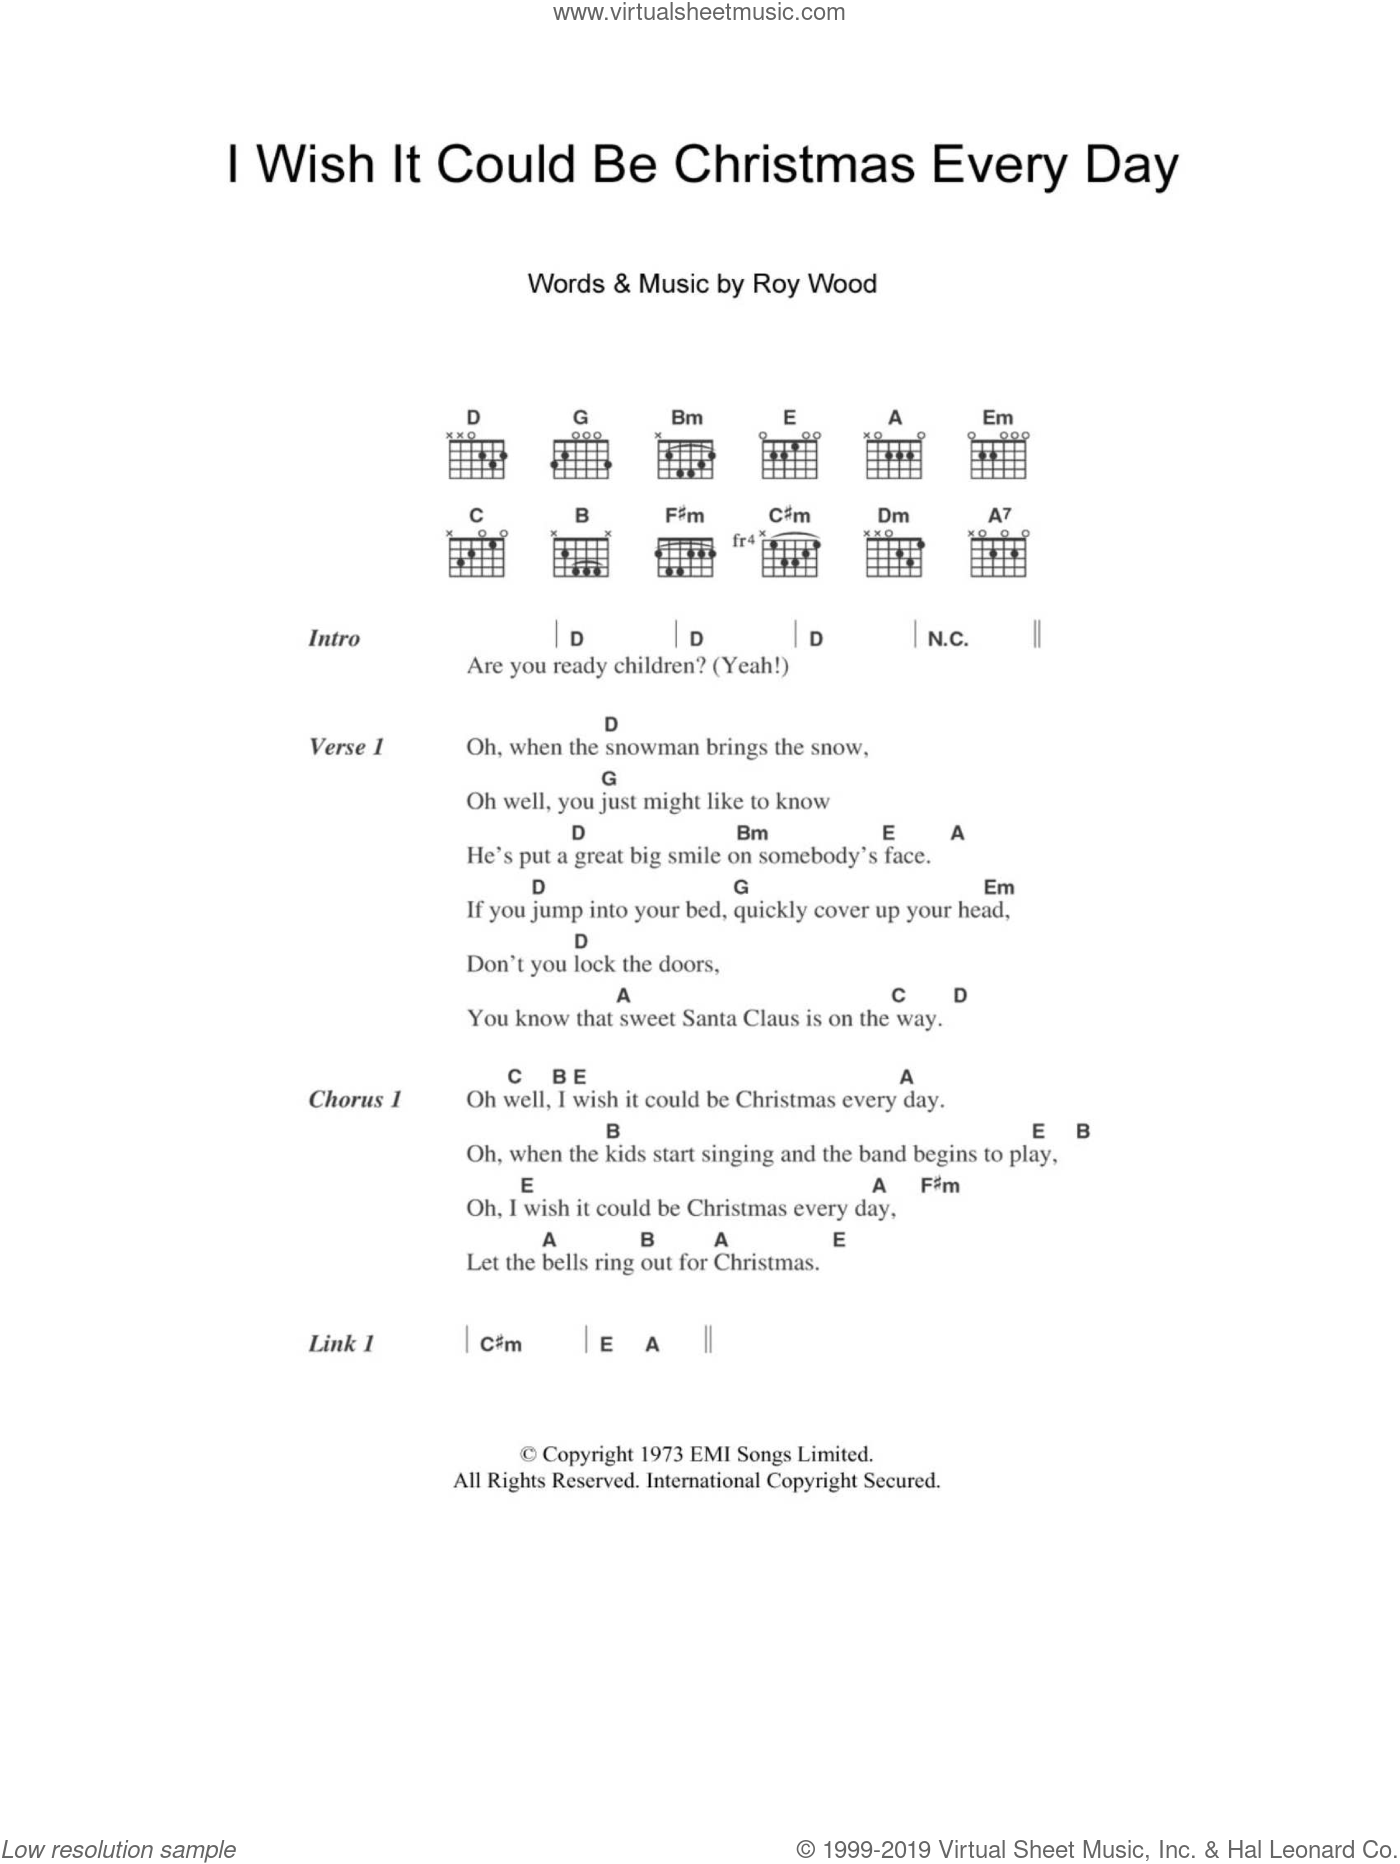 I Wish It Could Be Christmas Every Day sheet music for guitar (chords, lyrics, melody) by Roy Wood